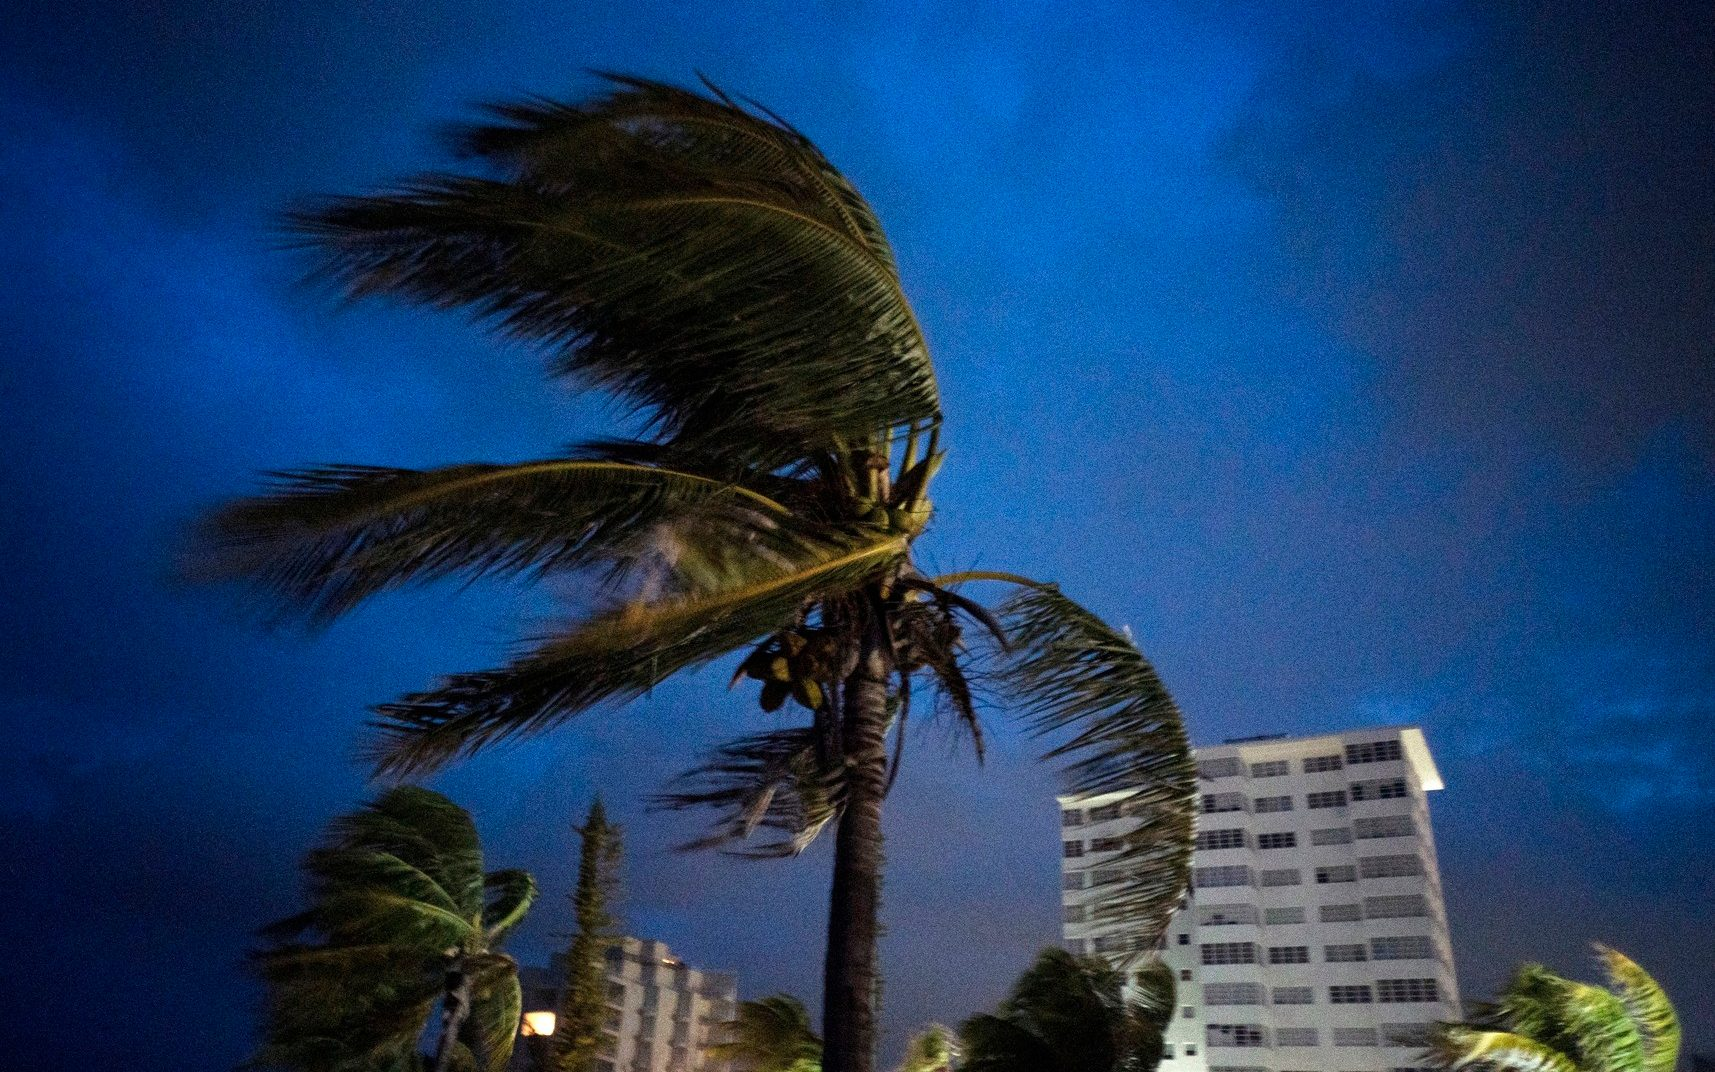 Hurricane Dorian wreaks havoc in the Bahamas with catastrophic winds reaching 225 miles per hour